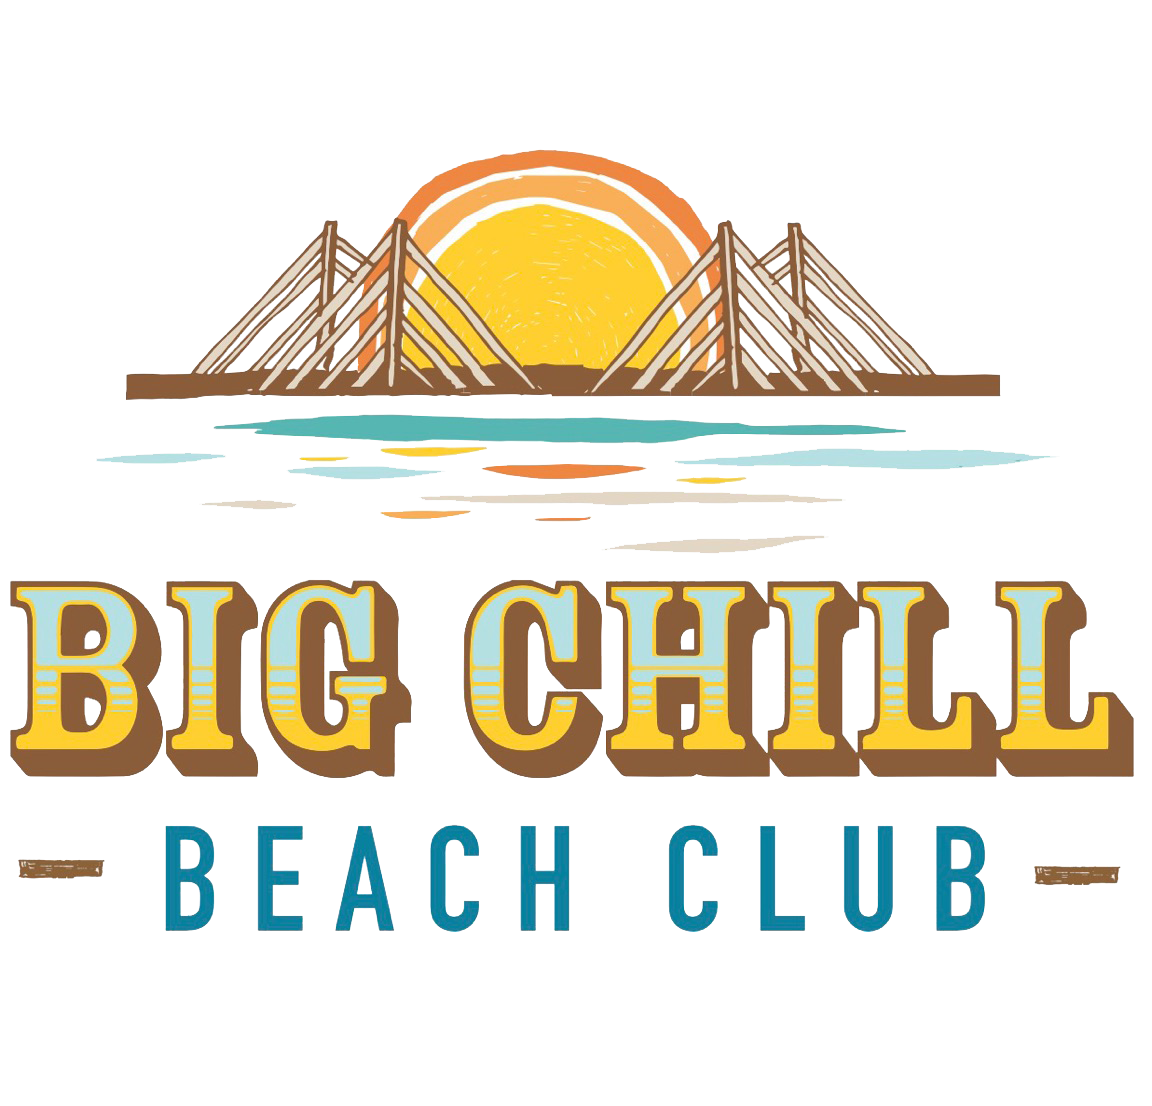 1BEACH CLUB - SUNRISE & SURFBOARD copy.png